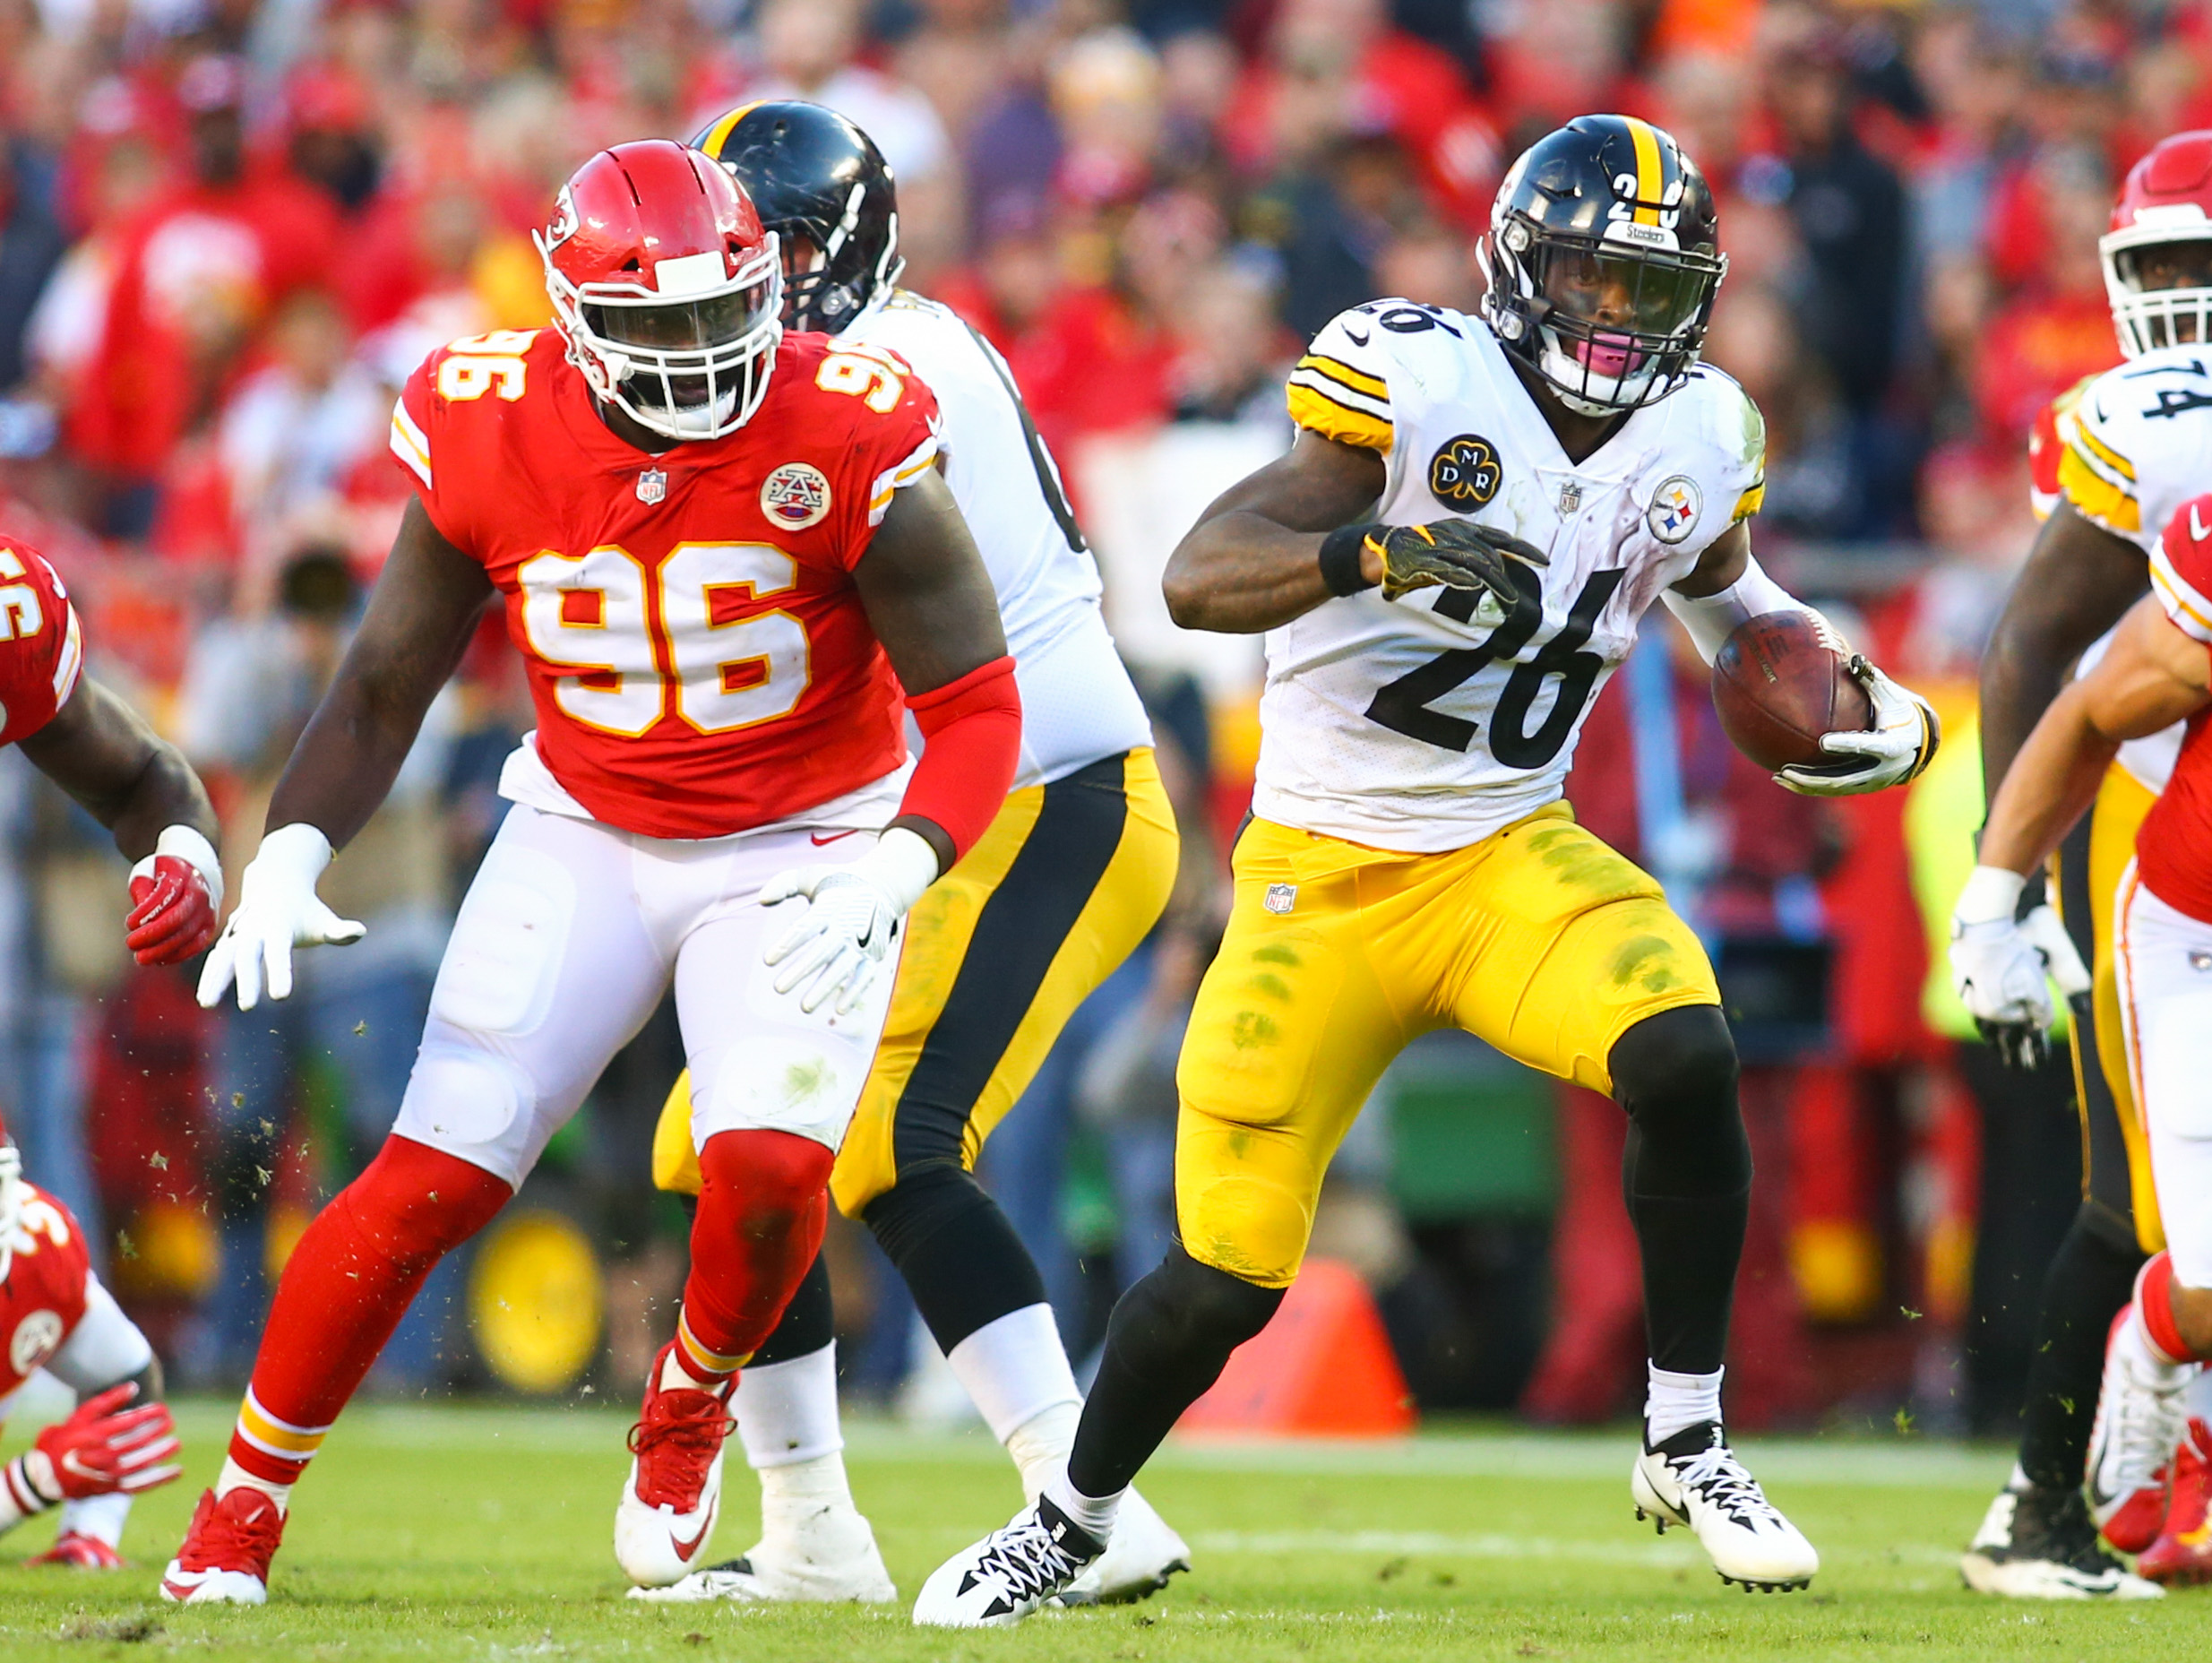 NFL: Pittsburgh Steelers at Kansas City Chiefs